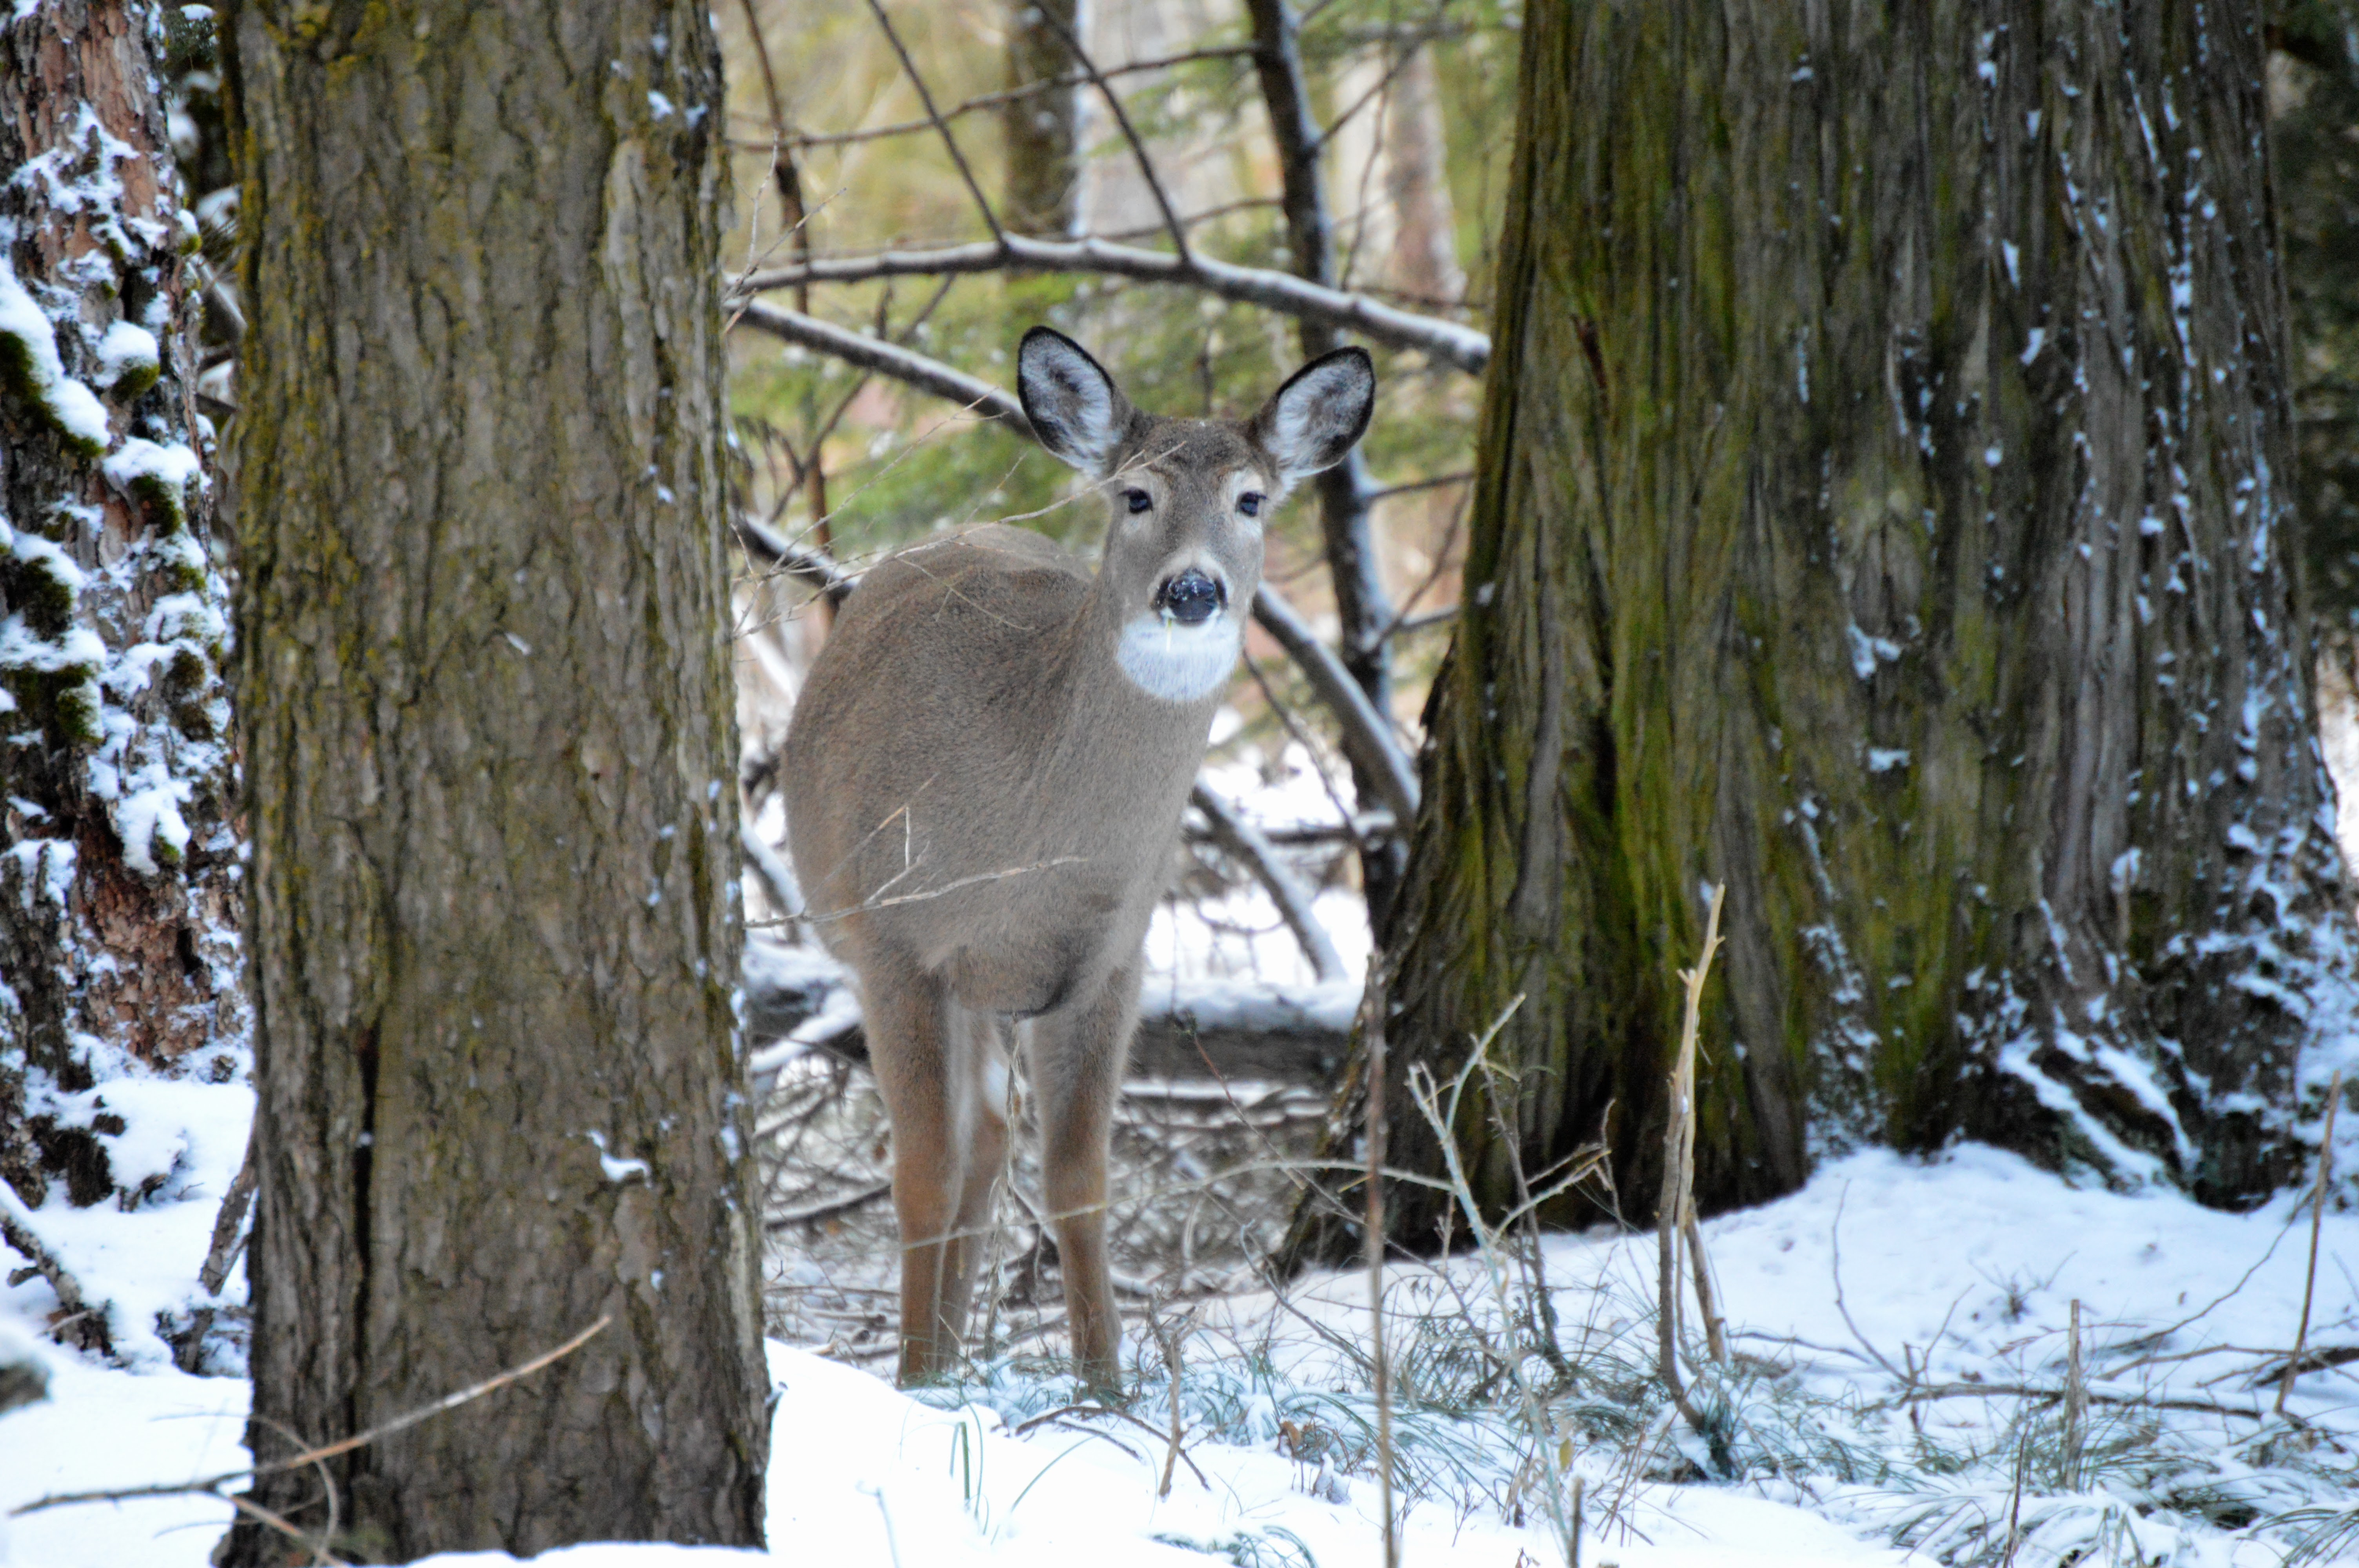 a deer walks in the snow among trees